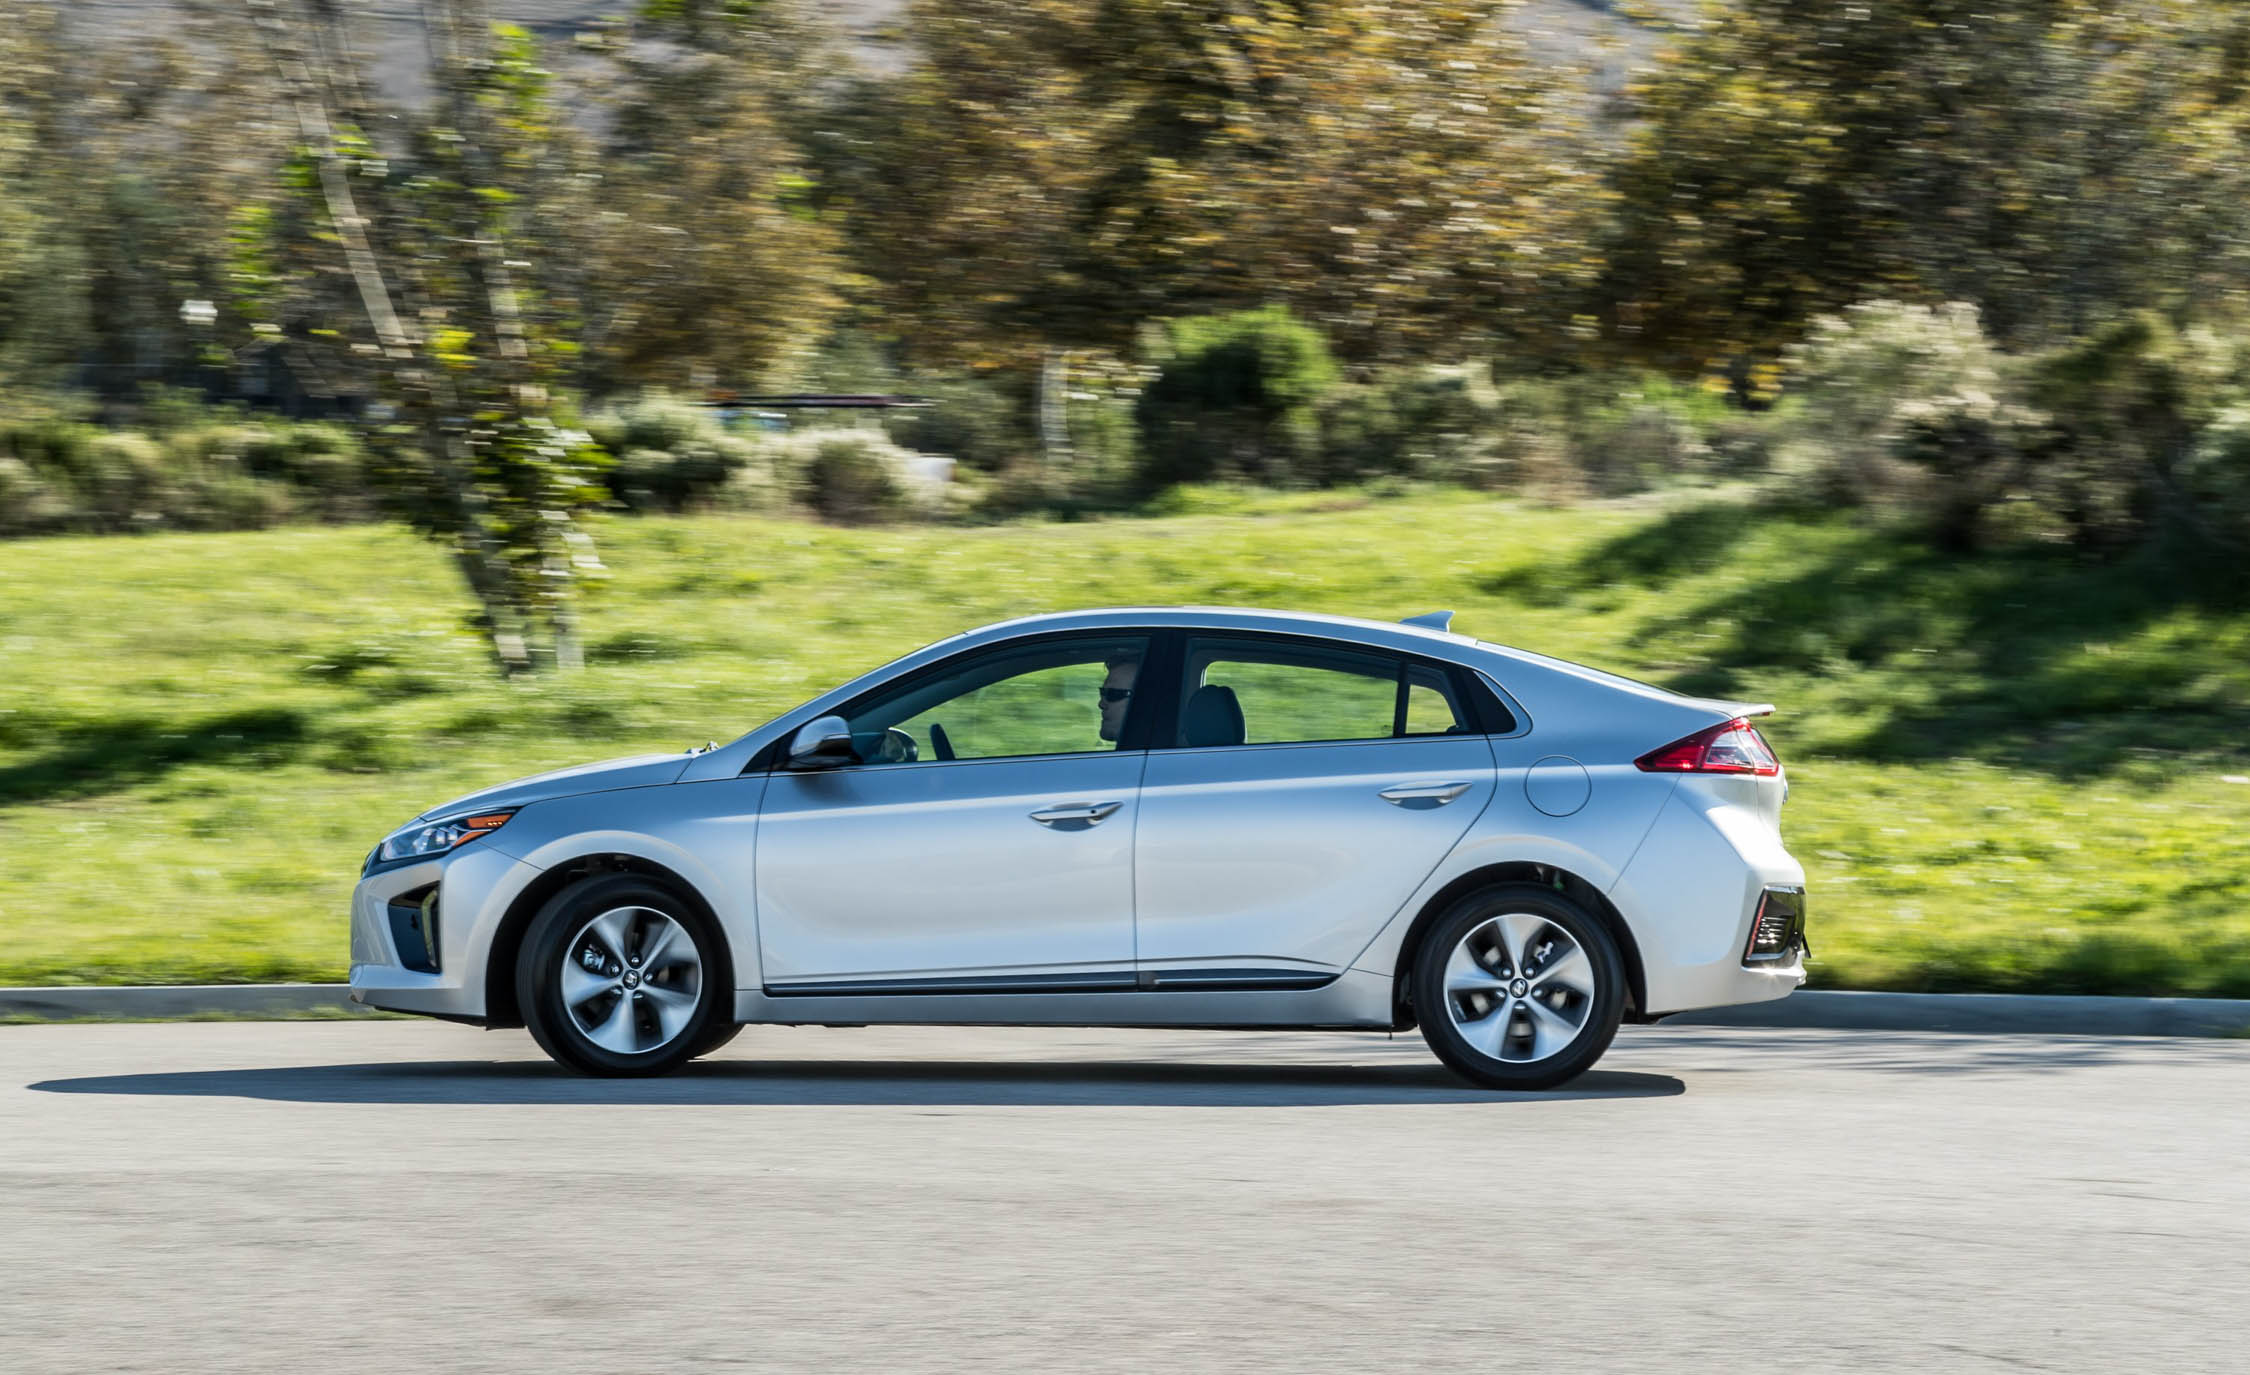 2017 Hyundai Ioniq Electric Test Drive Silver Metallic (Photo 35 of 67)